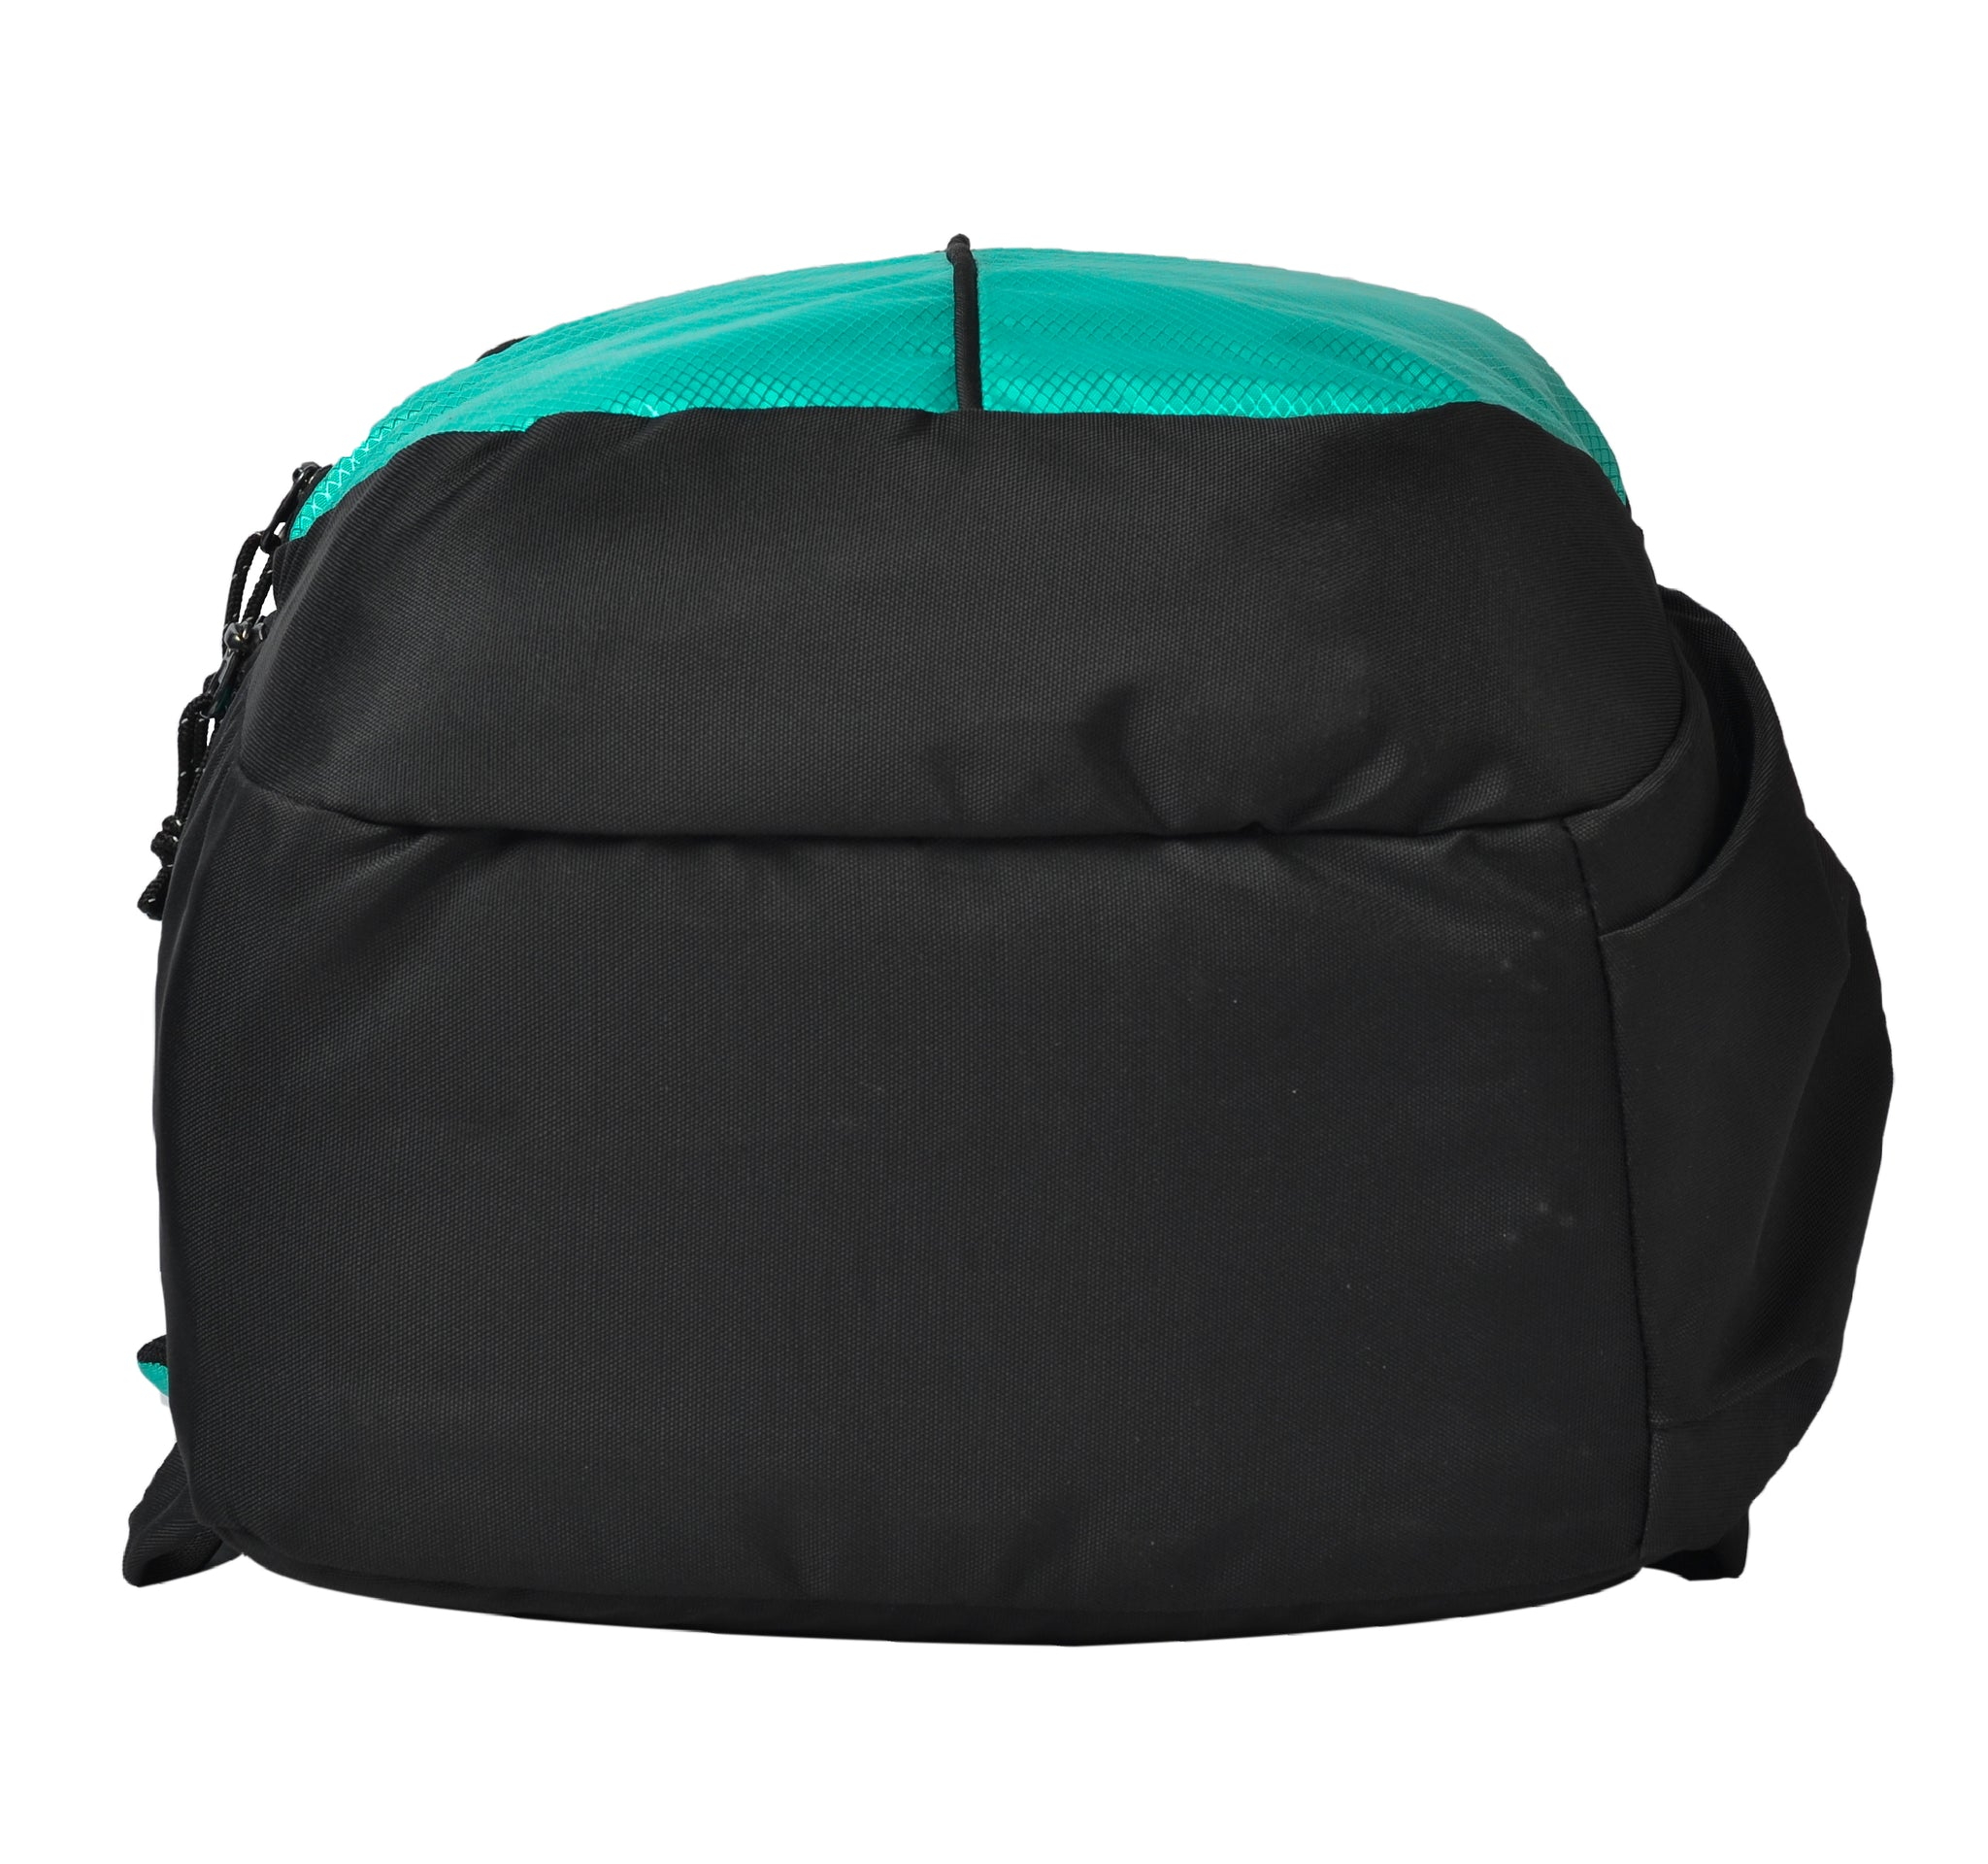 F Gear Paladin 26 Liters Backpack (Sea Green Diamond, Black Guc)